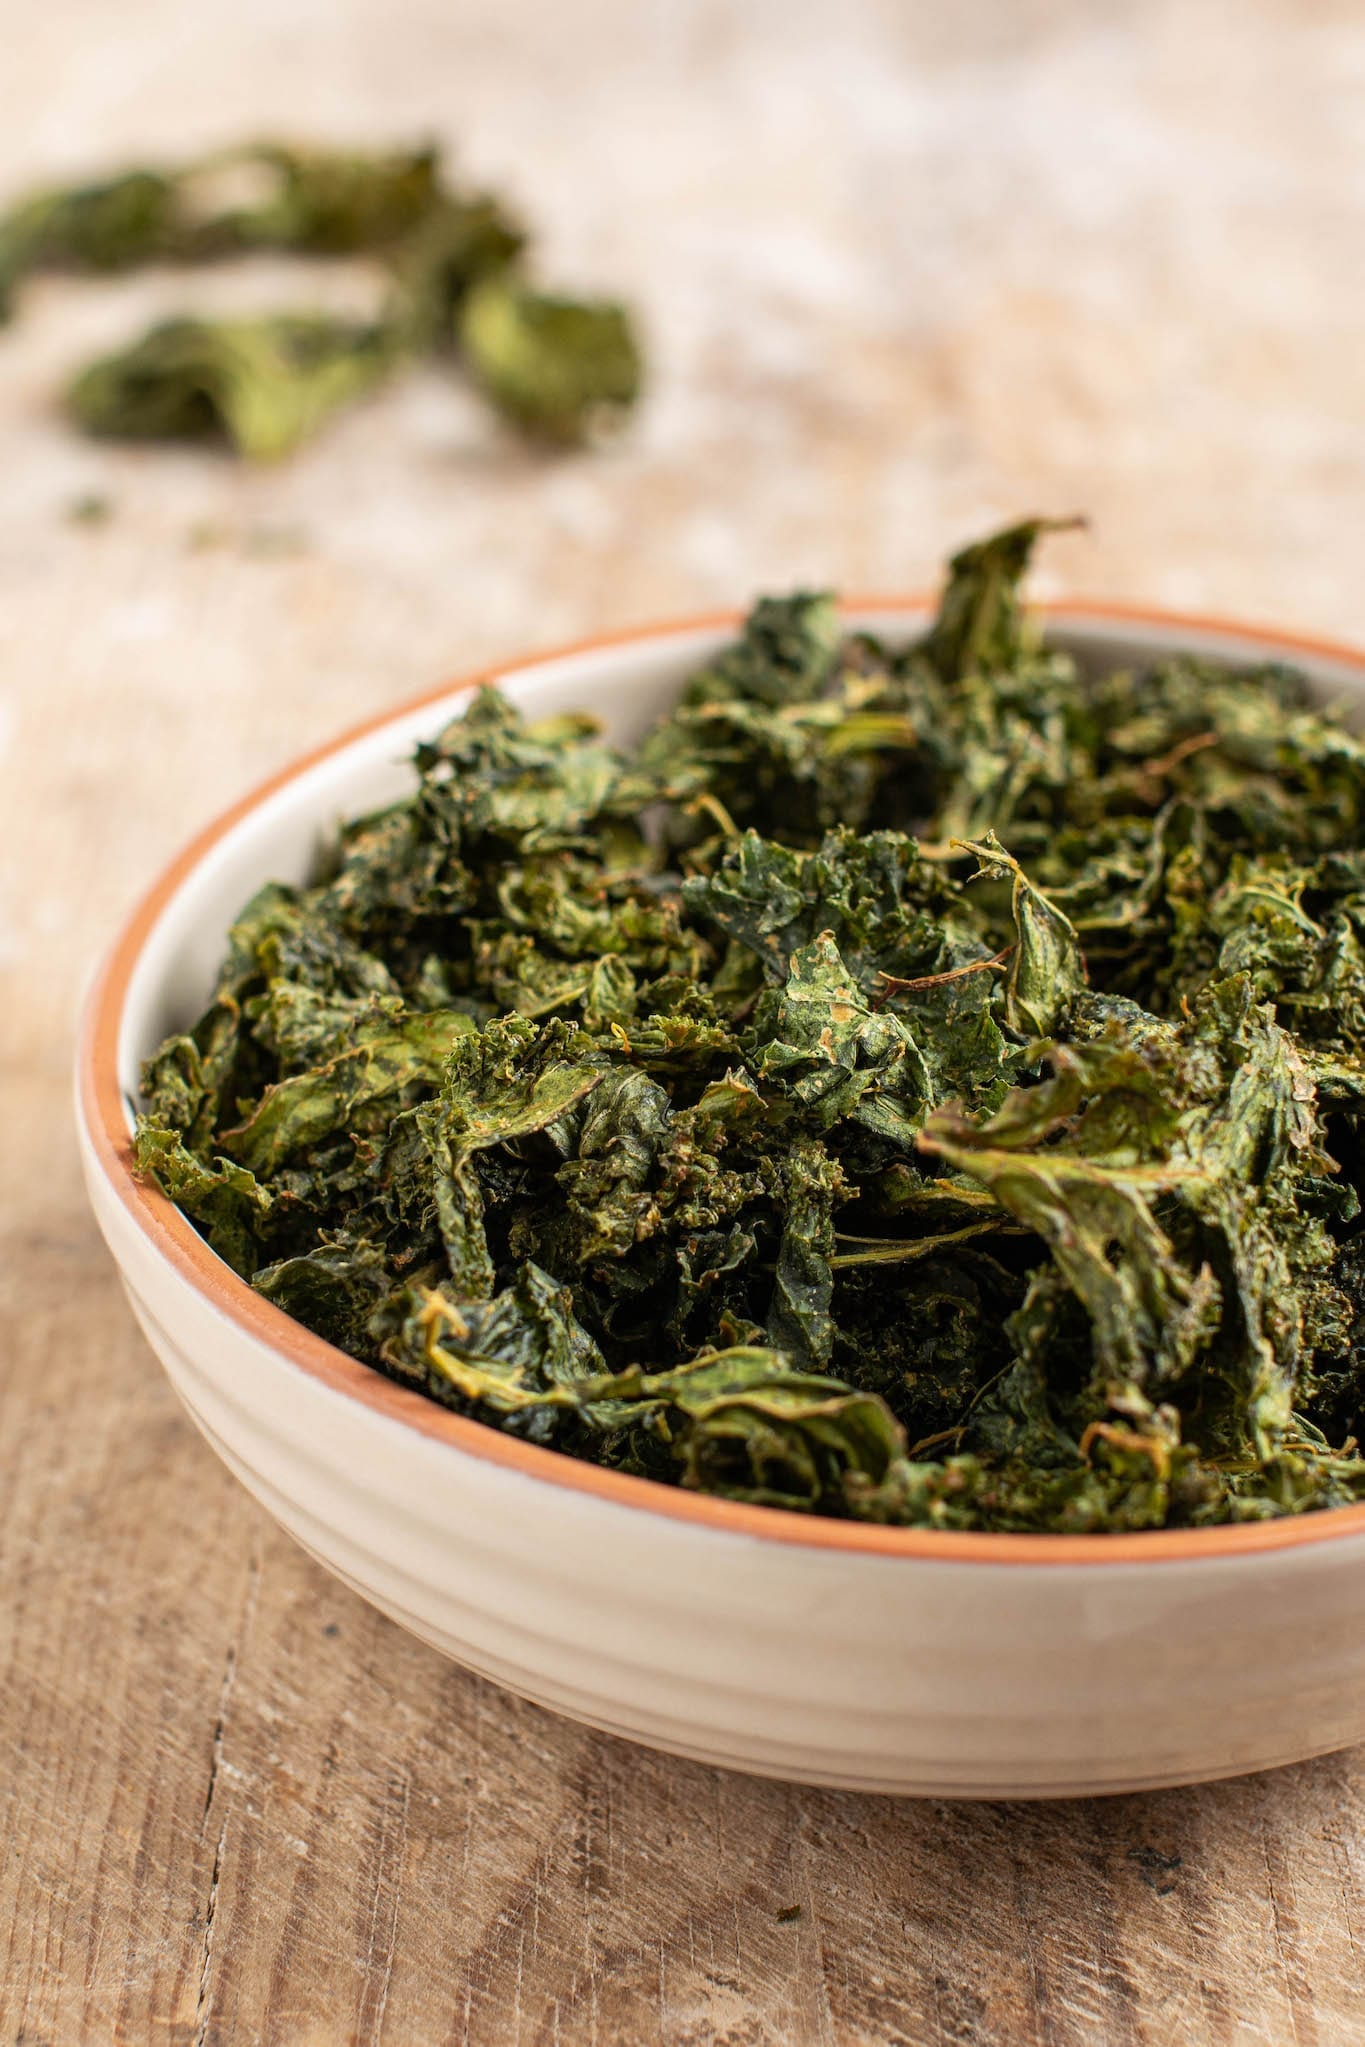 Try those delicious baked kale chips that are also oil-free. It's a great recipe for a healthy snack instead of potato chips for when you crave something crispy and a bit salty